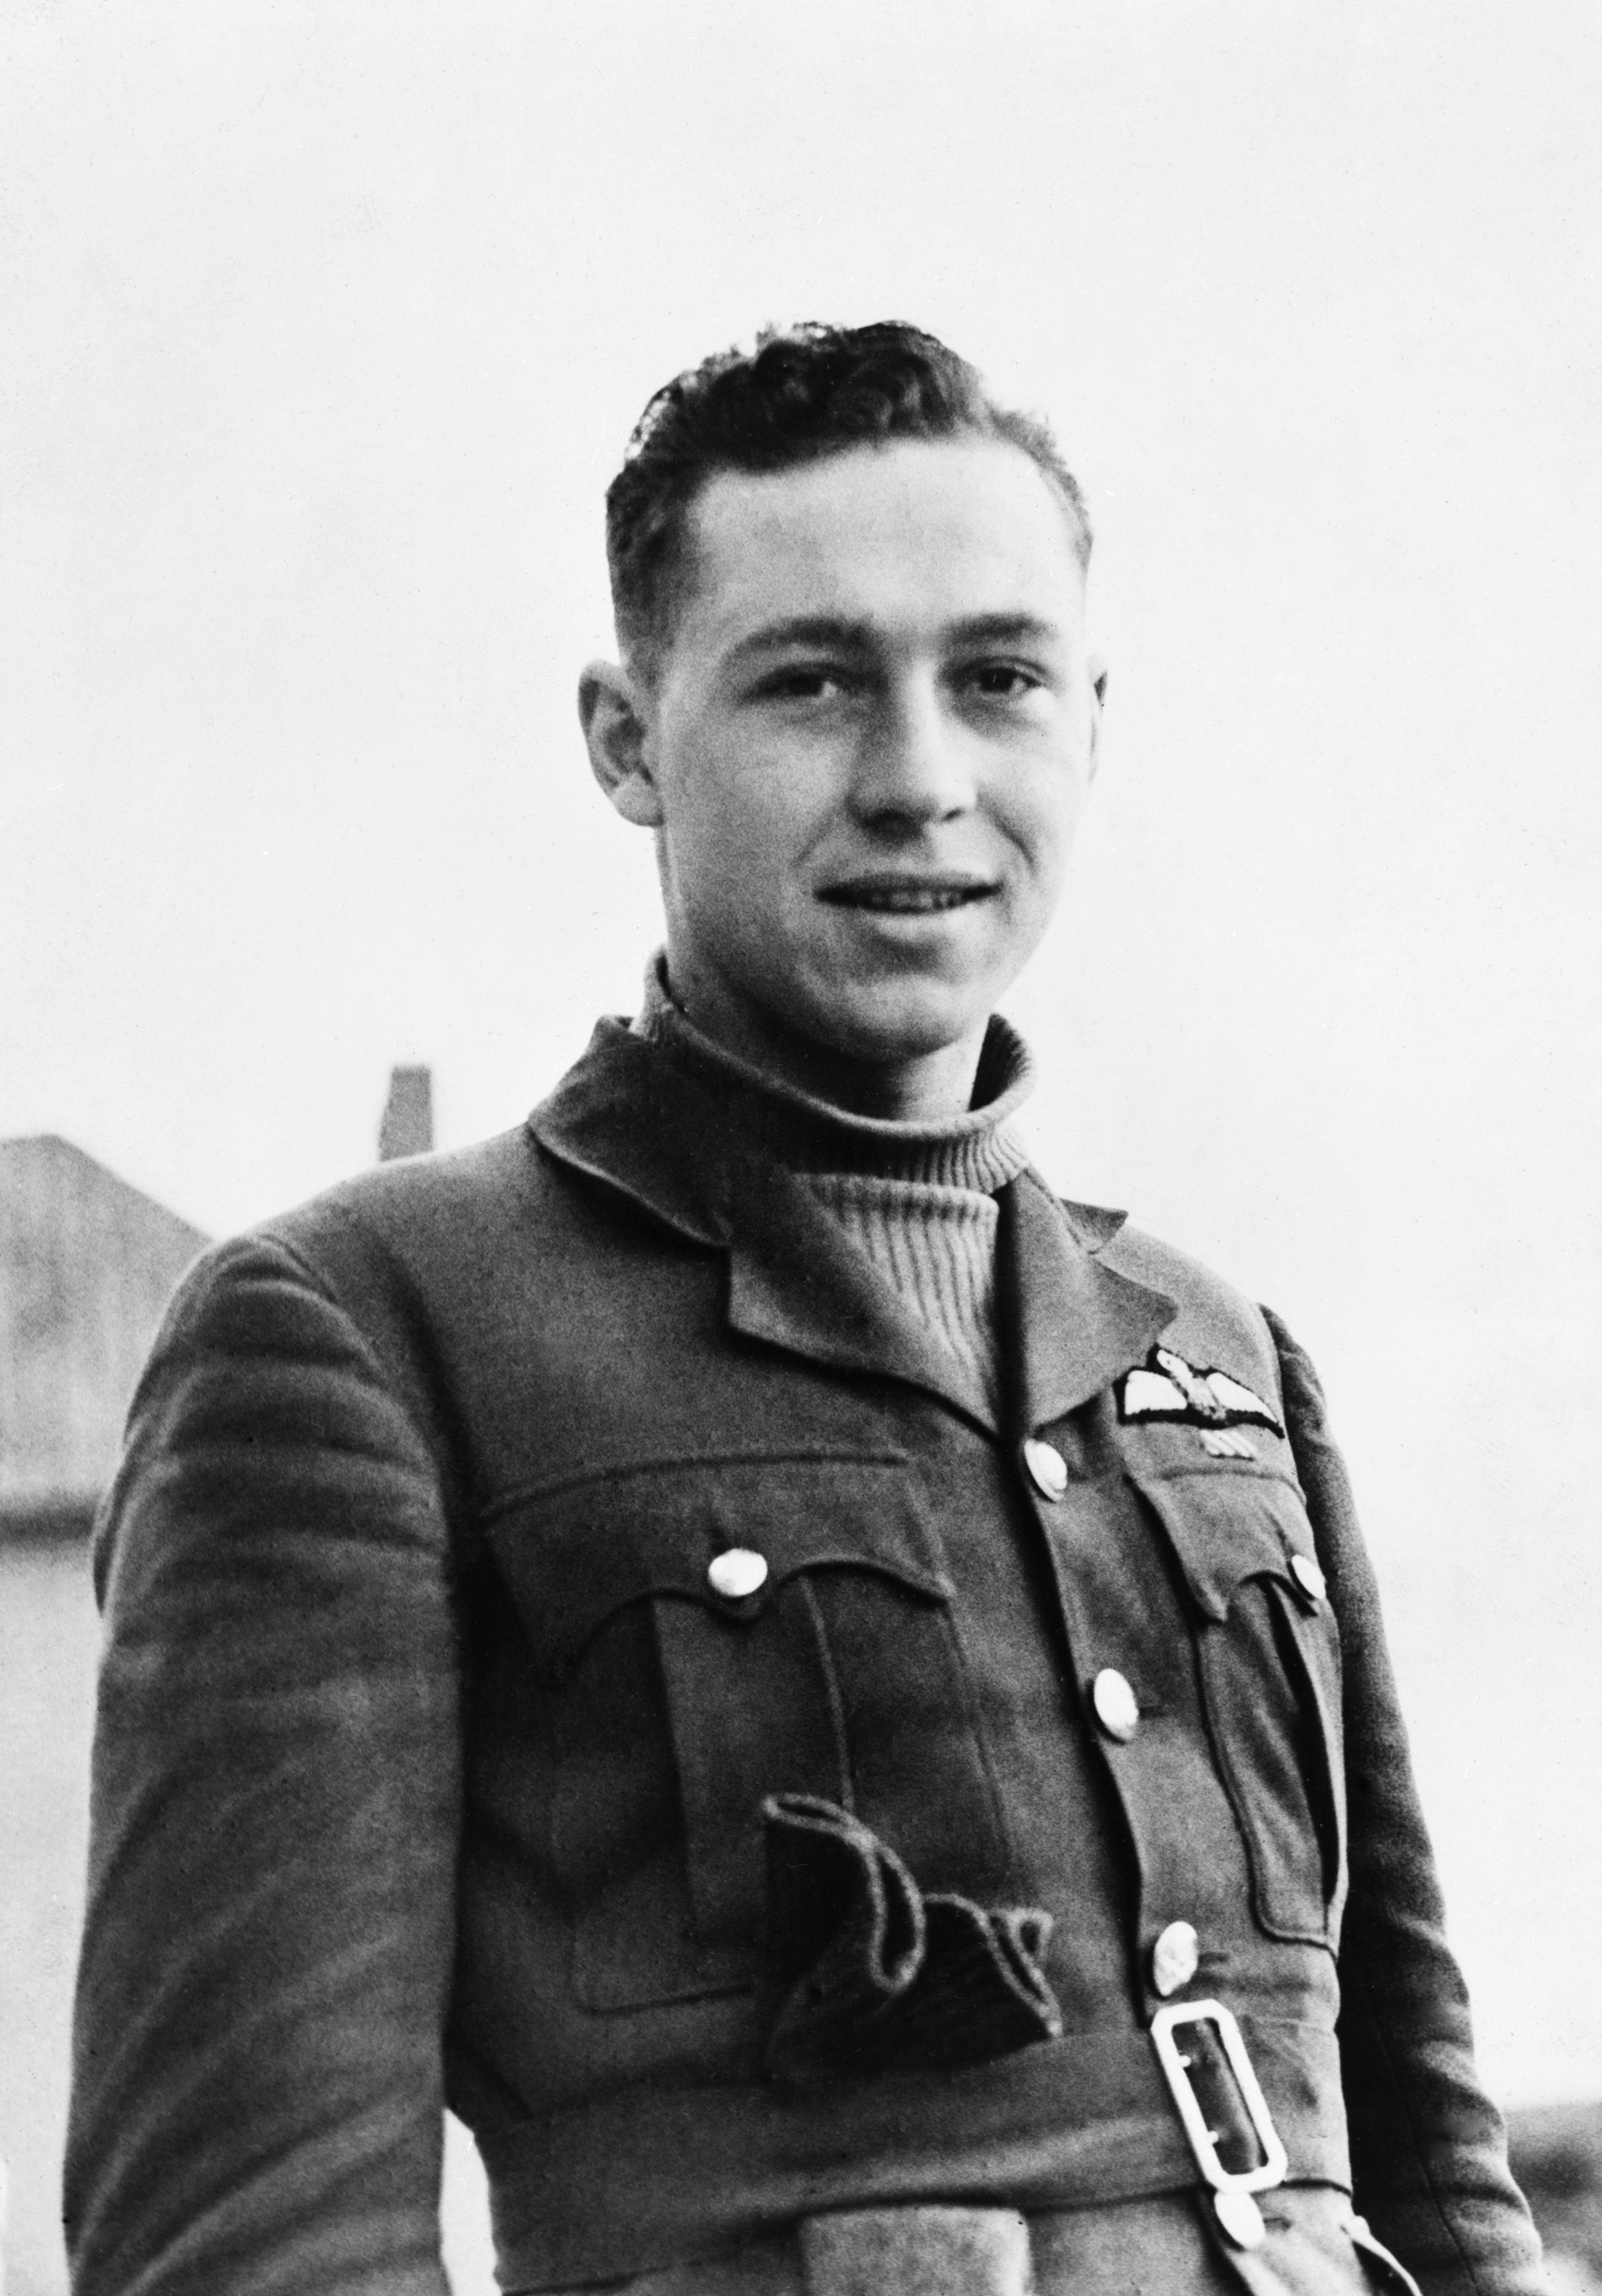 Pilot Officer William Lidstone McKnight. PHOTO: © Imperial War Museum, CH 1321